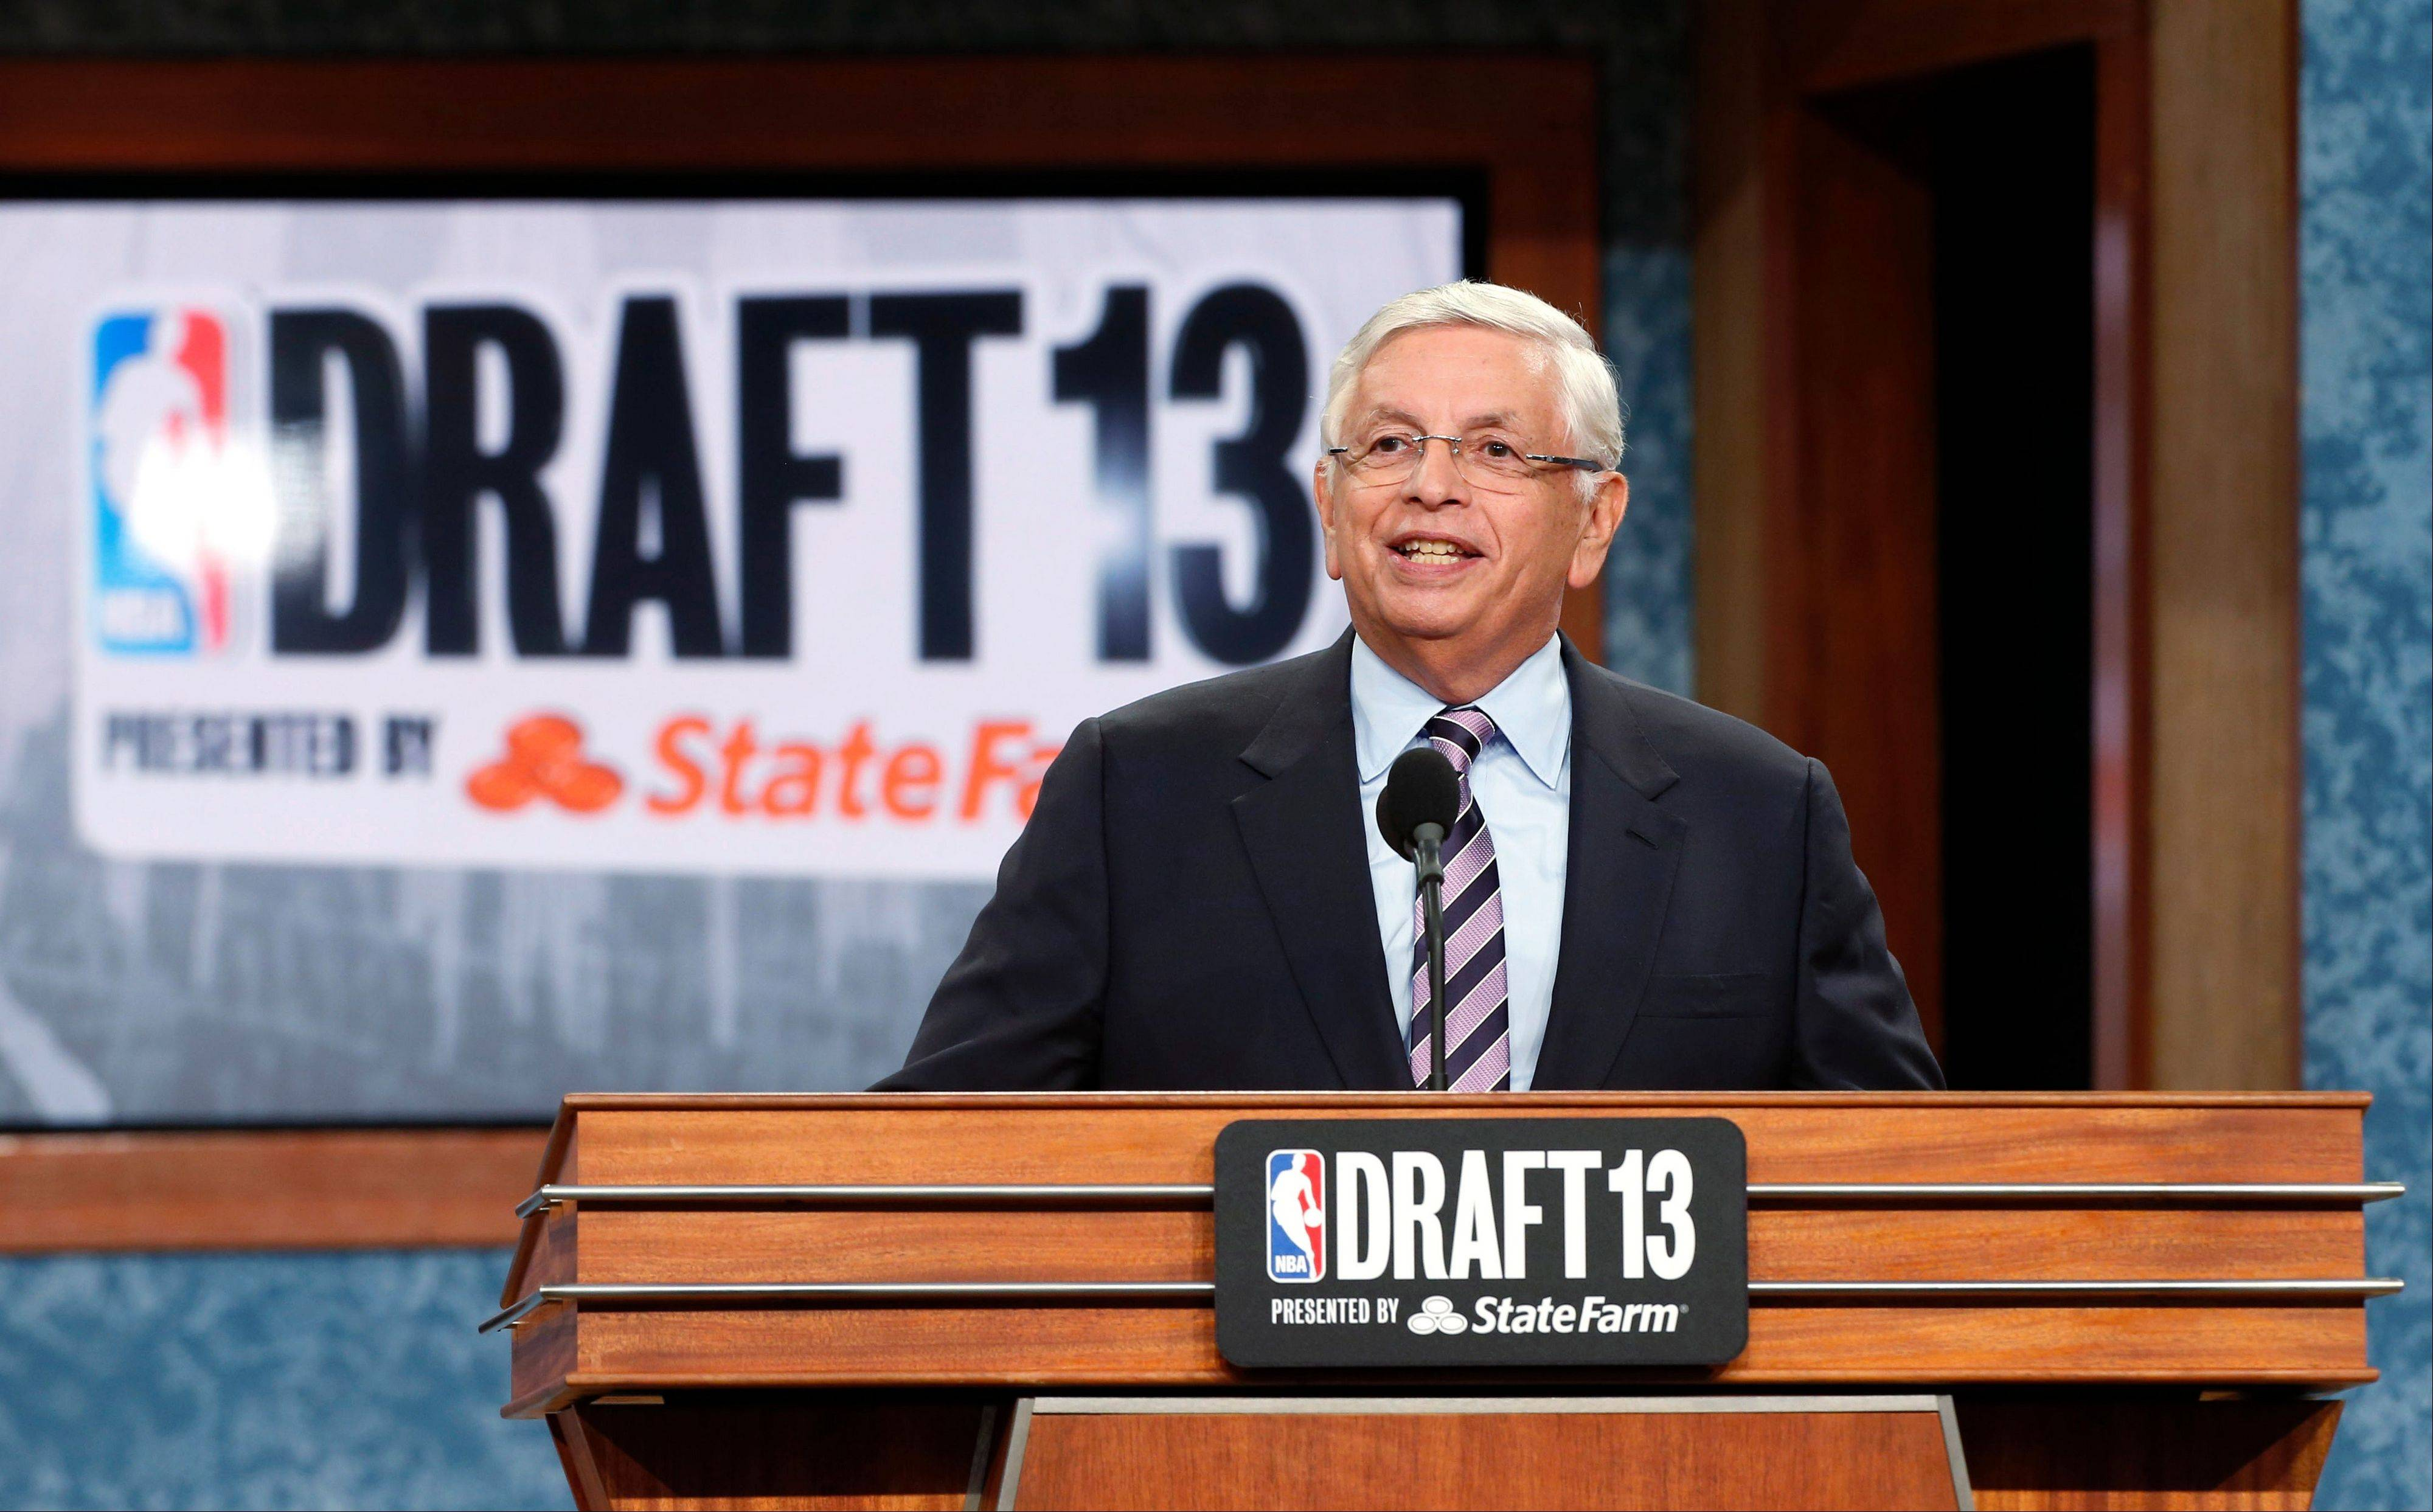 NBA Commissioner David Stern, here presiding over the NBA draft on Thursday, will officially step down next February after 30 years of running the league.